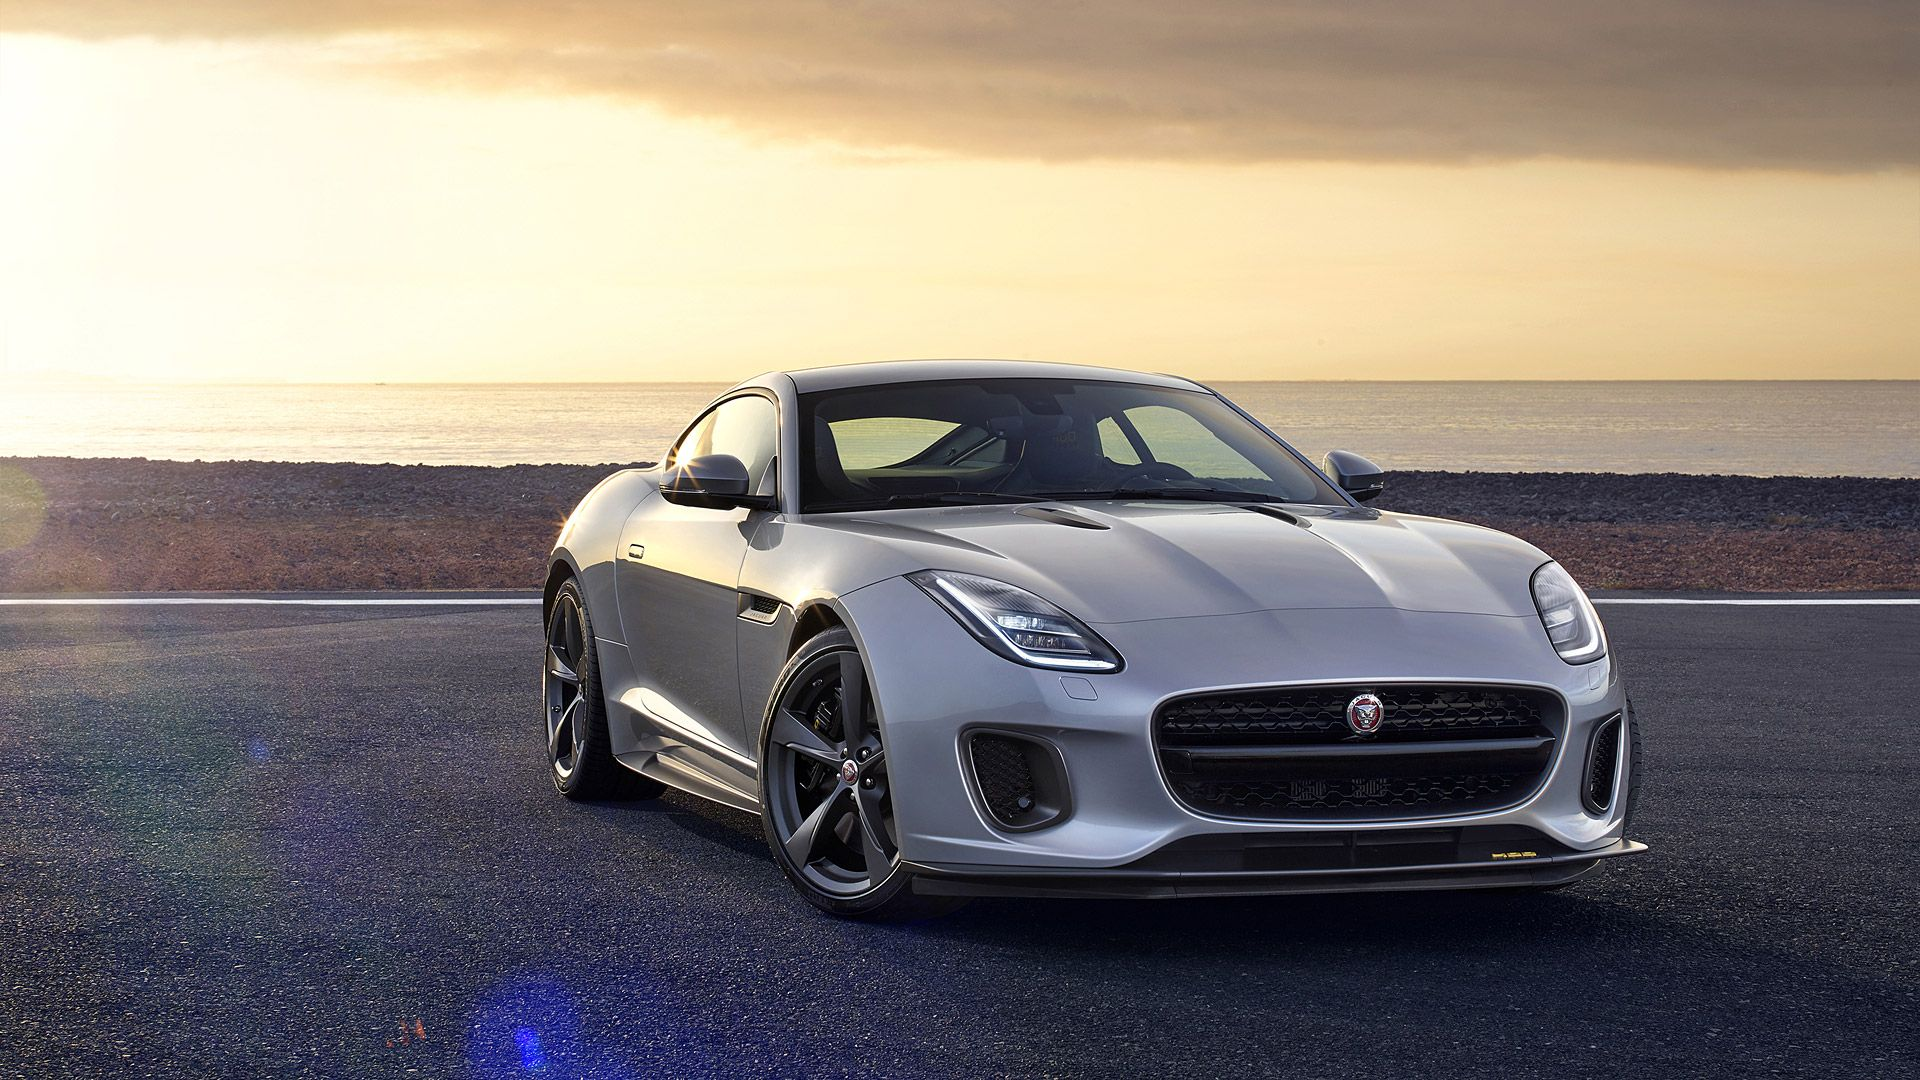 2018 Jaguar F-Type Wallpapers & HD Images - WSupercars